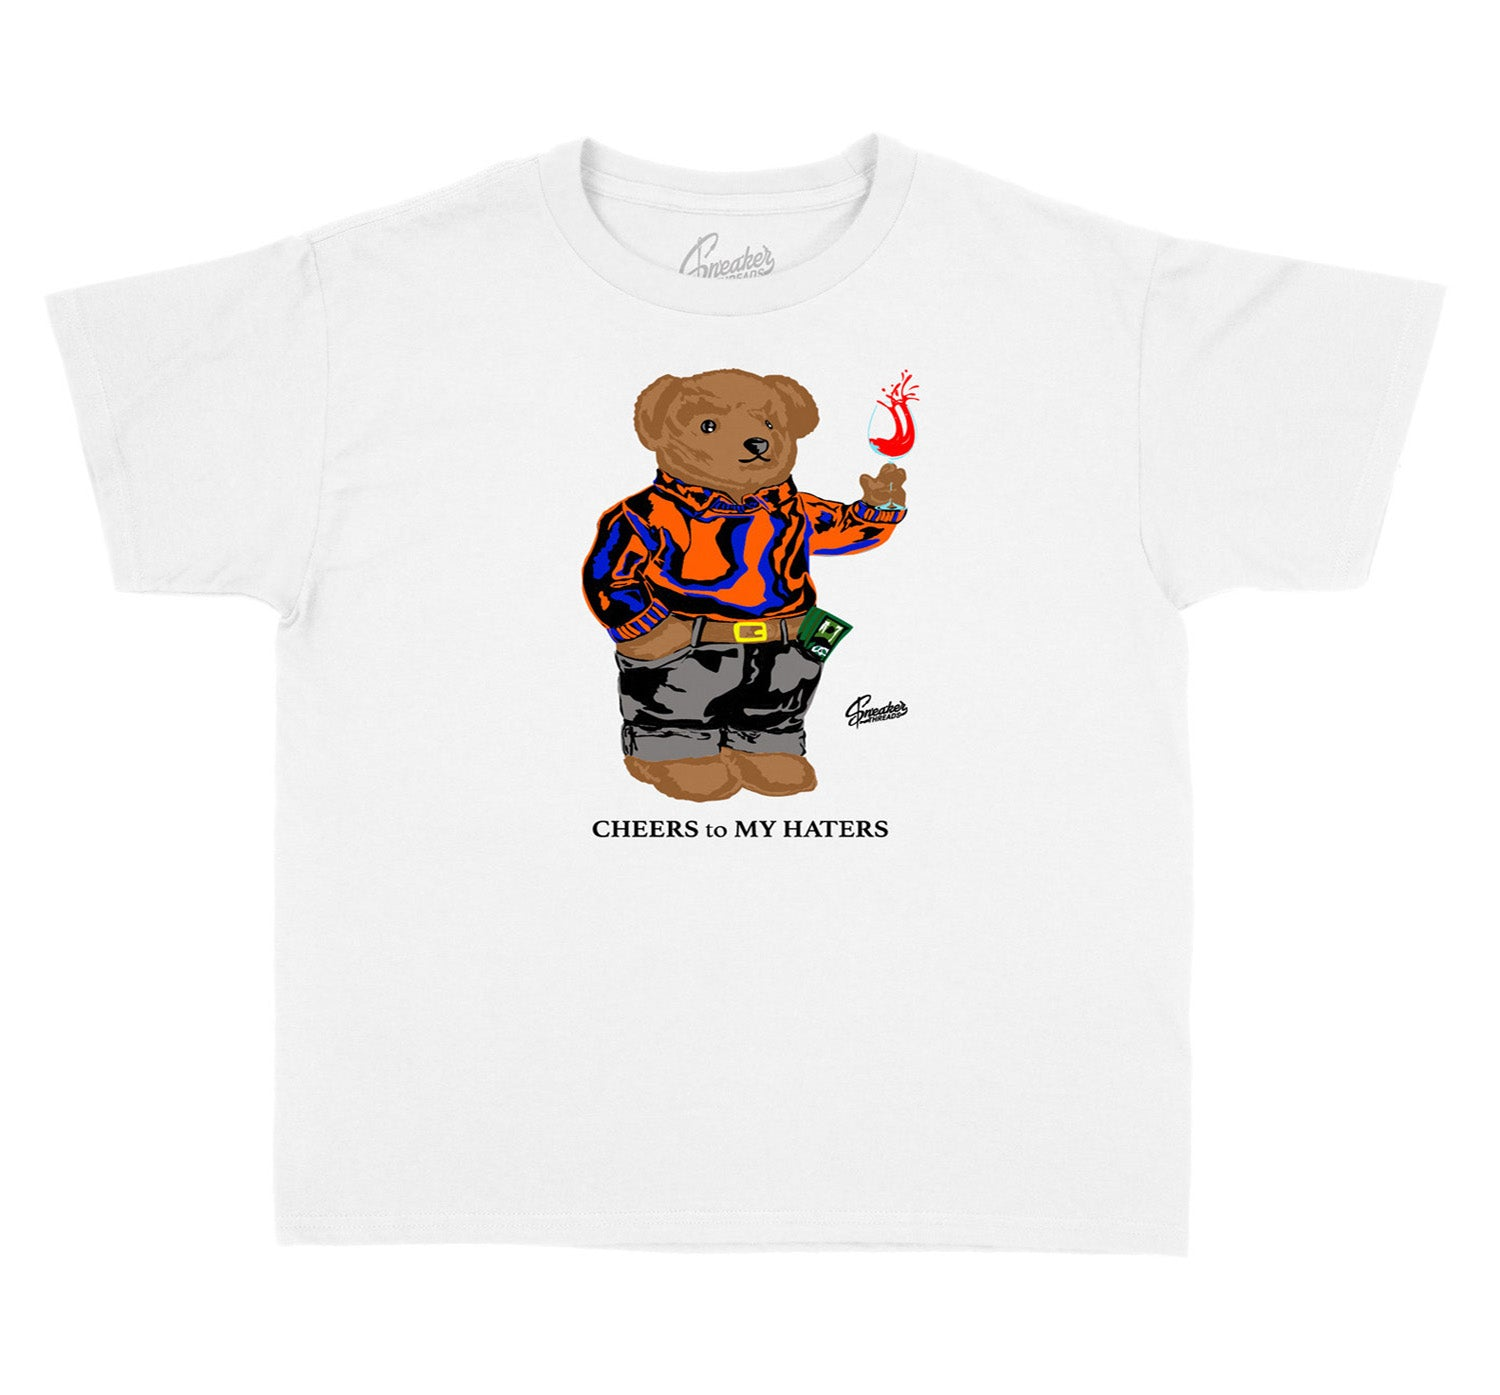 Jordan 3 Knicks kid shoe matches kid t shirt